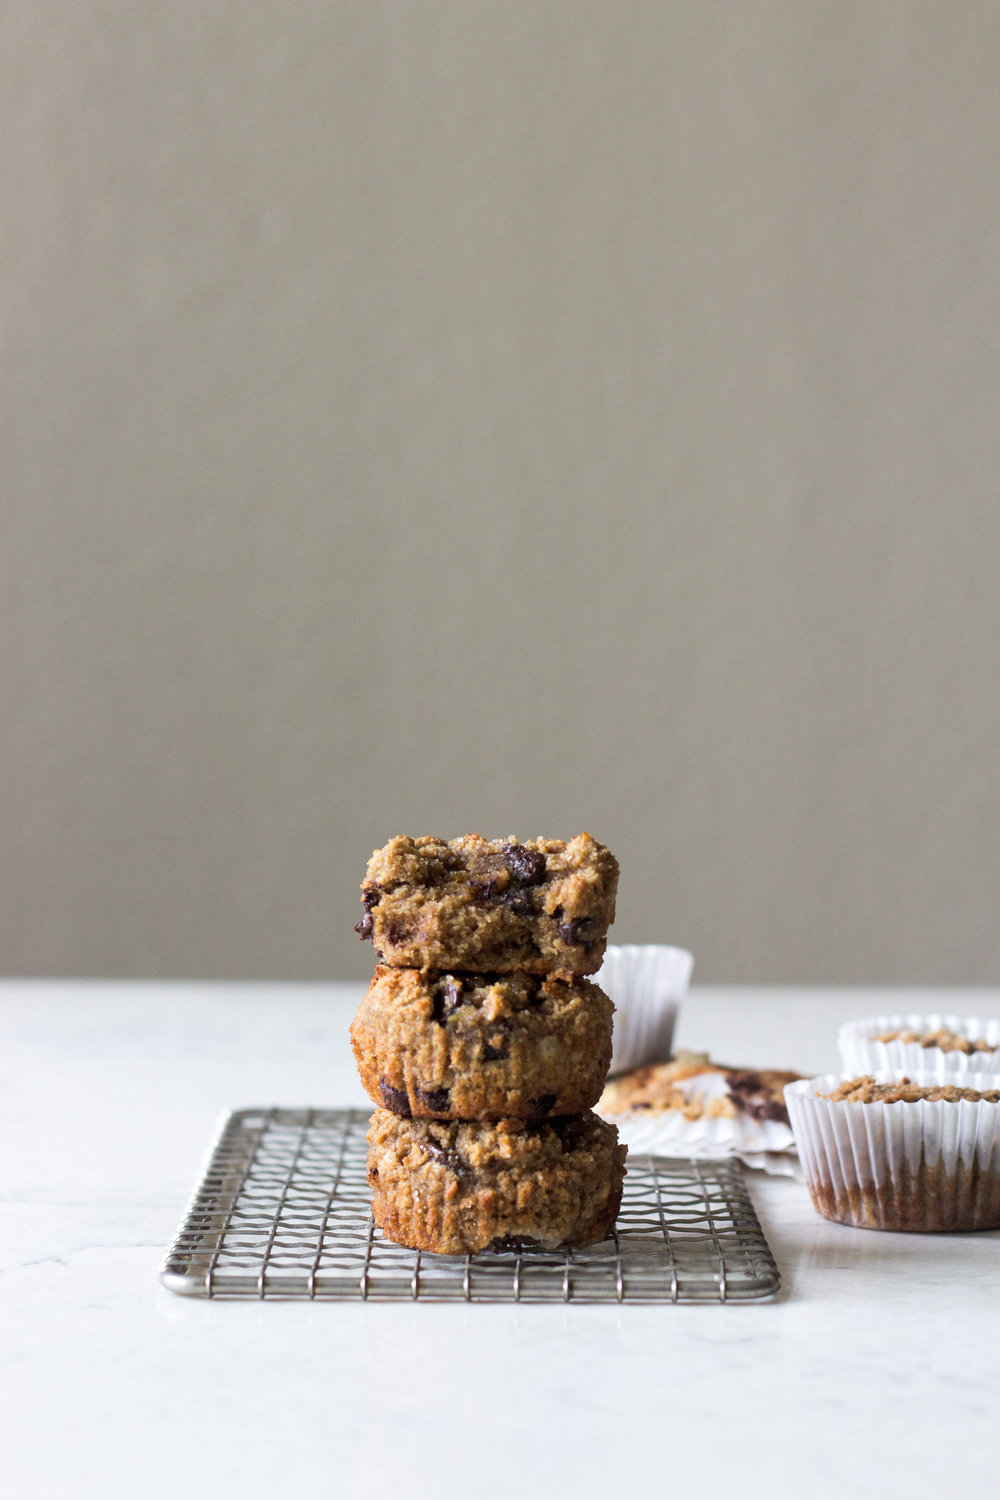 coffee banana oat almond muffins - makes about 10-12 muffinsadapted from Vanilla Bean Blog2 cups almond meal/flour1/2 cup rolled oats (gf oats if you want a gf muffin)1/4 teaspoon baking powder1/2 teaspoon salt1/4 cup flavorless oil1/4 cup honey1/4 cup coffee, cooled1 teaspoon vanilla1 egg1/2 teaspoon baking soda1 banana, mashed1/2 cup semi-sweet chocolate chips (optional)2 tablespoons cacao nibs (optional) turbinado sugar, for sprinkling (optional)